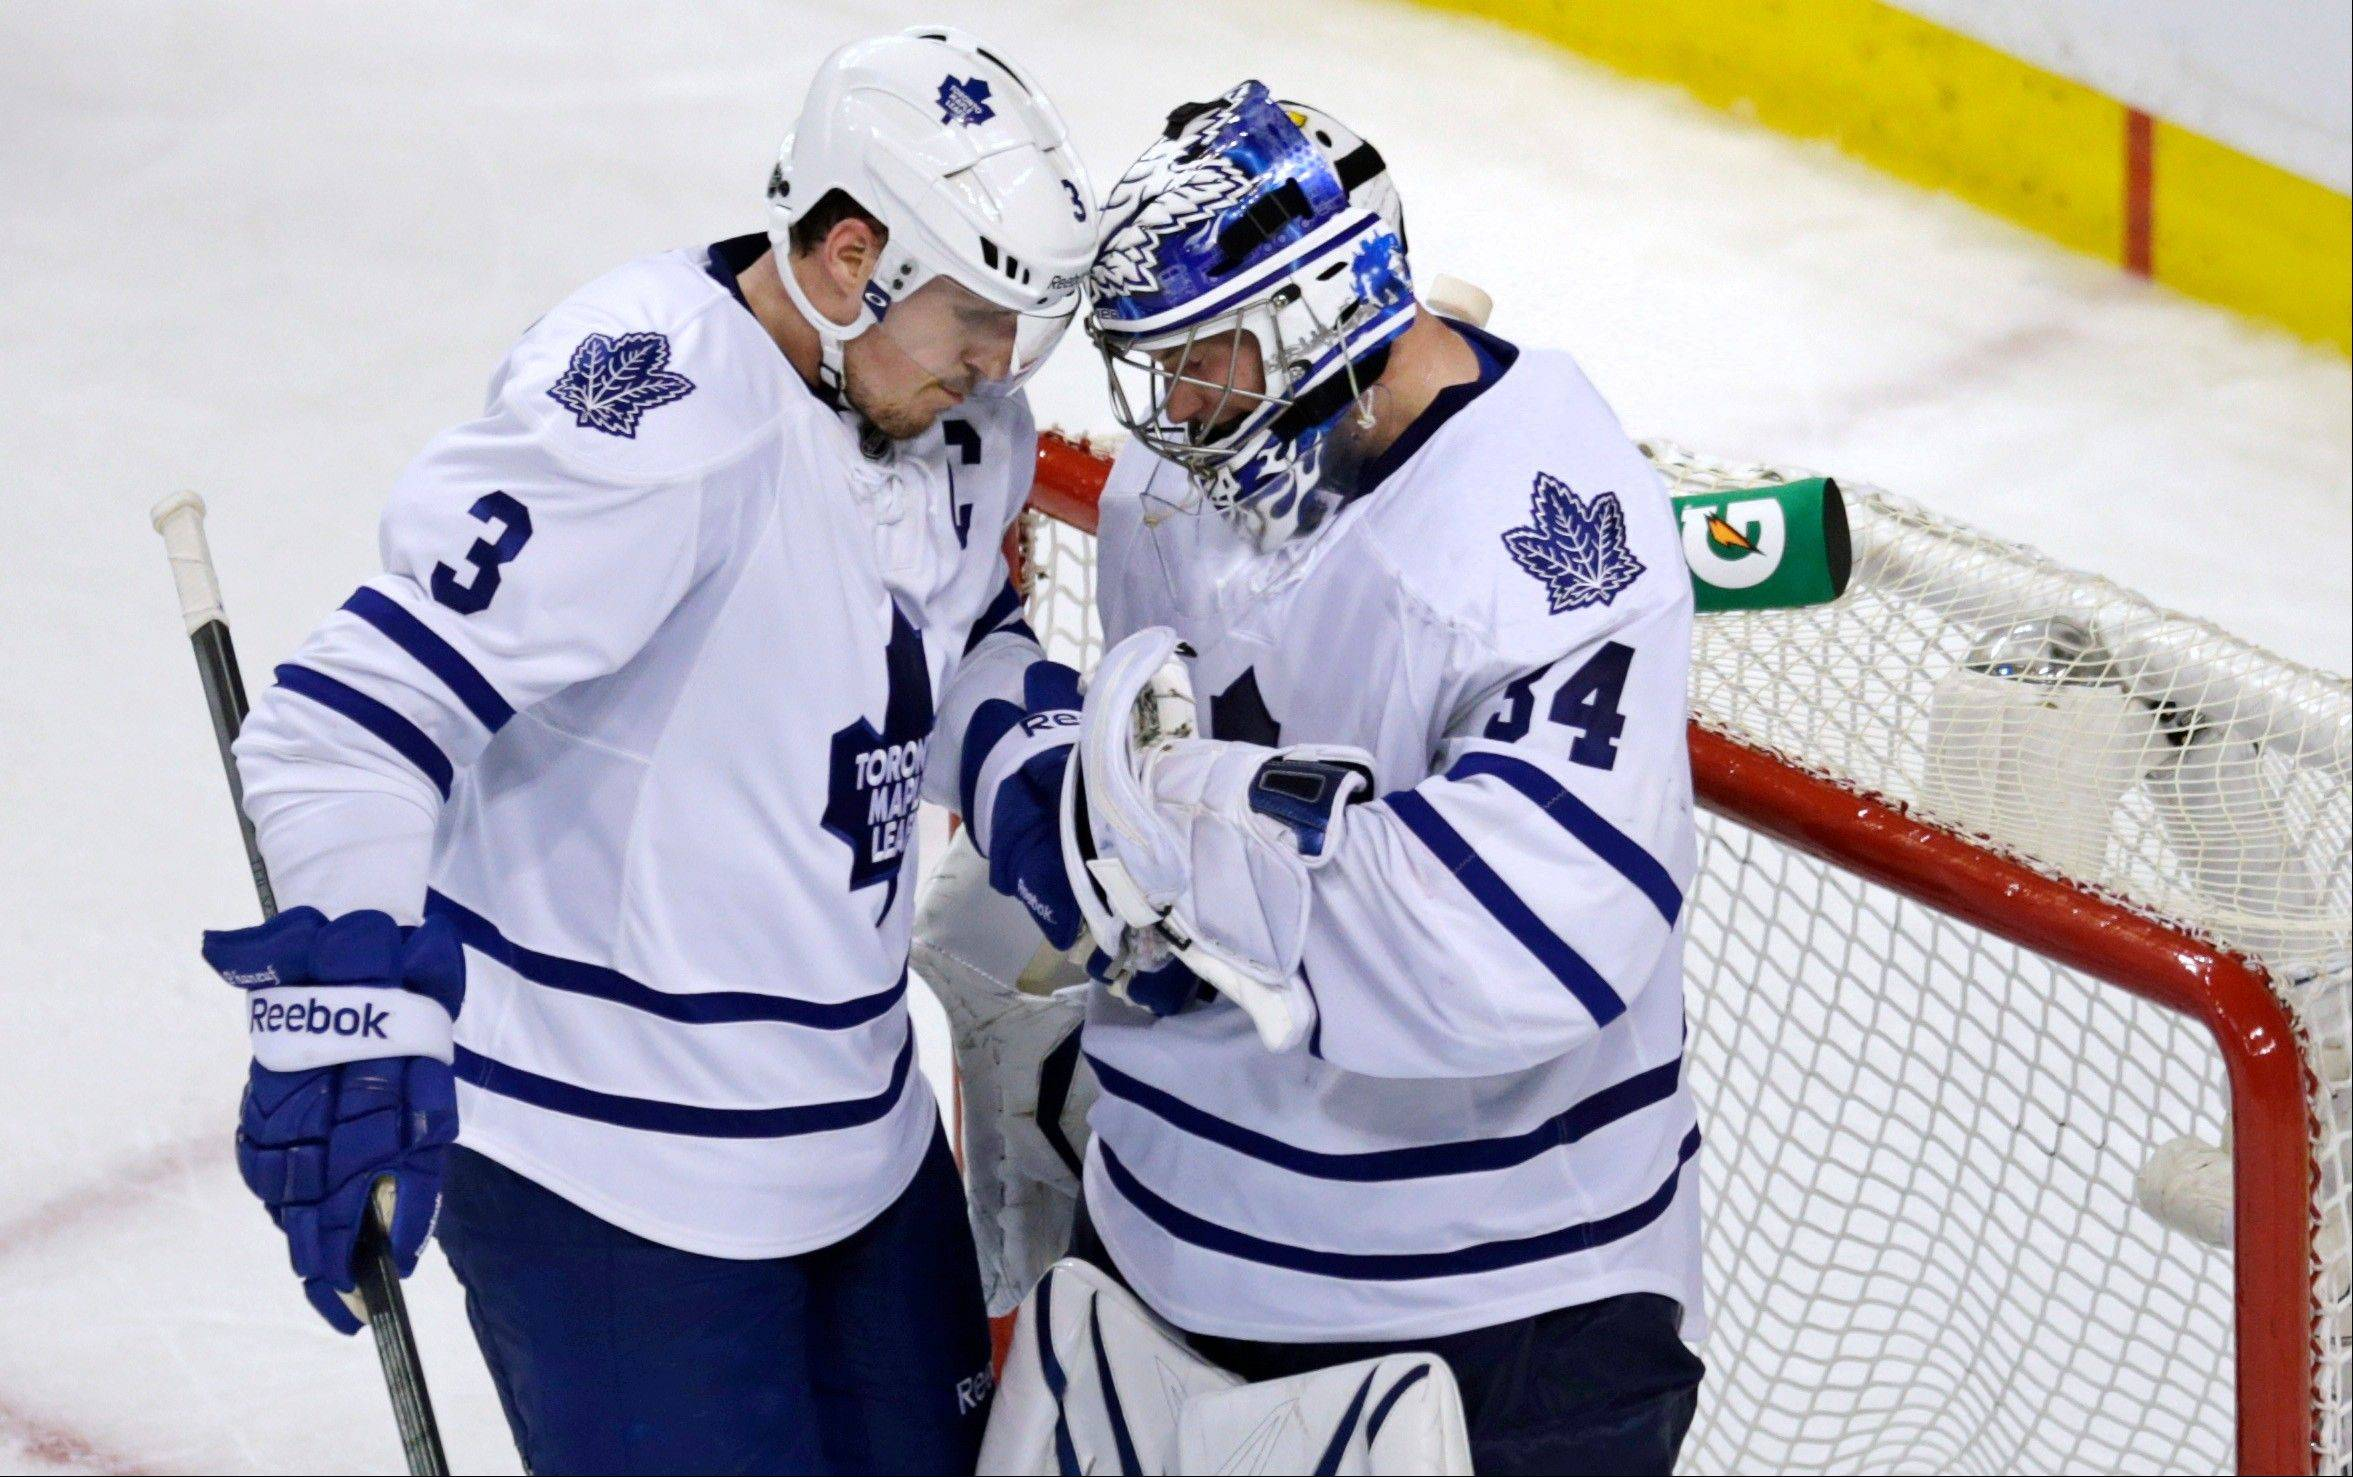 Toronto Maple Leafs goalie James Reimer, right, is congratulated by teammate Dion Phaneuf after the Maple Leafs defeated the Boston Bruins 2-1 in Game 5 of an NHL hockey Stanley Cup playoff series, in Boston on Friday, May 10, 2013.